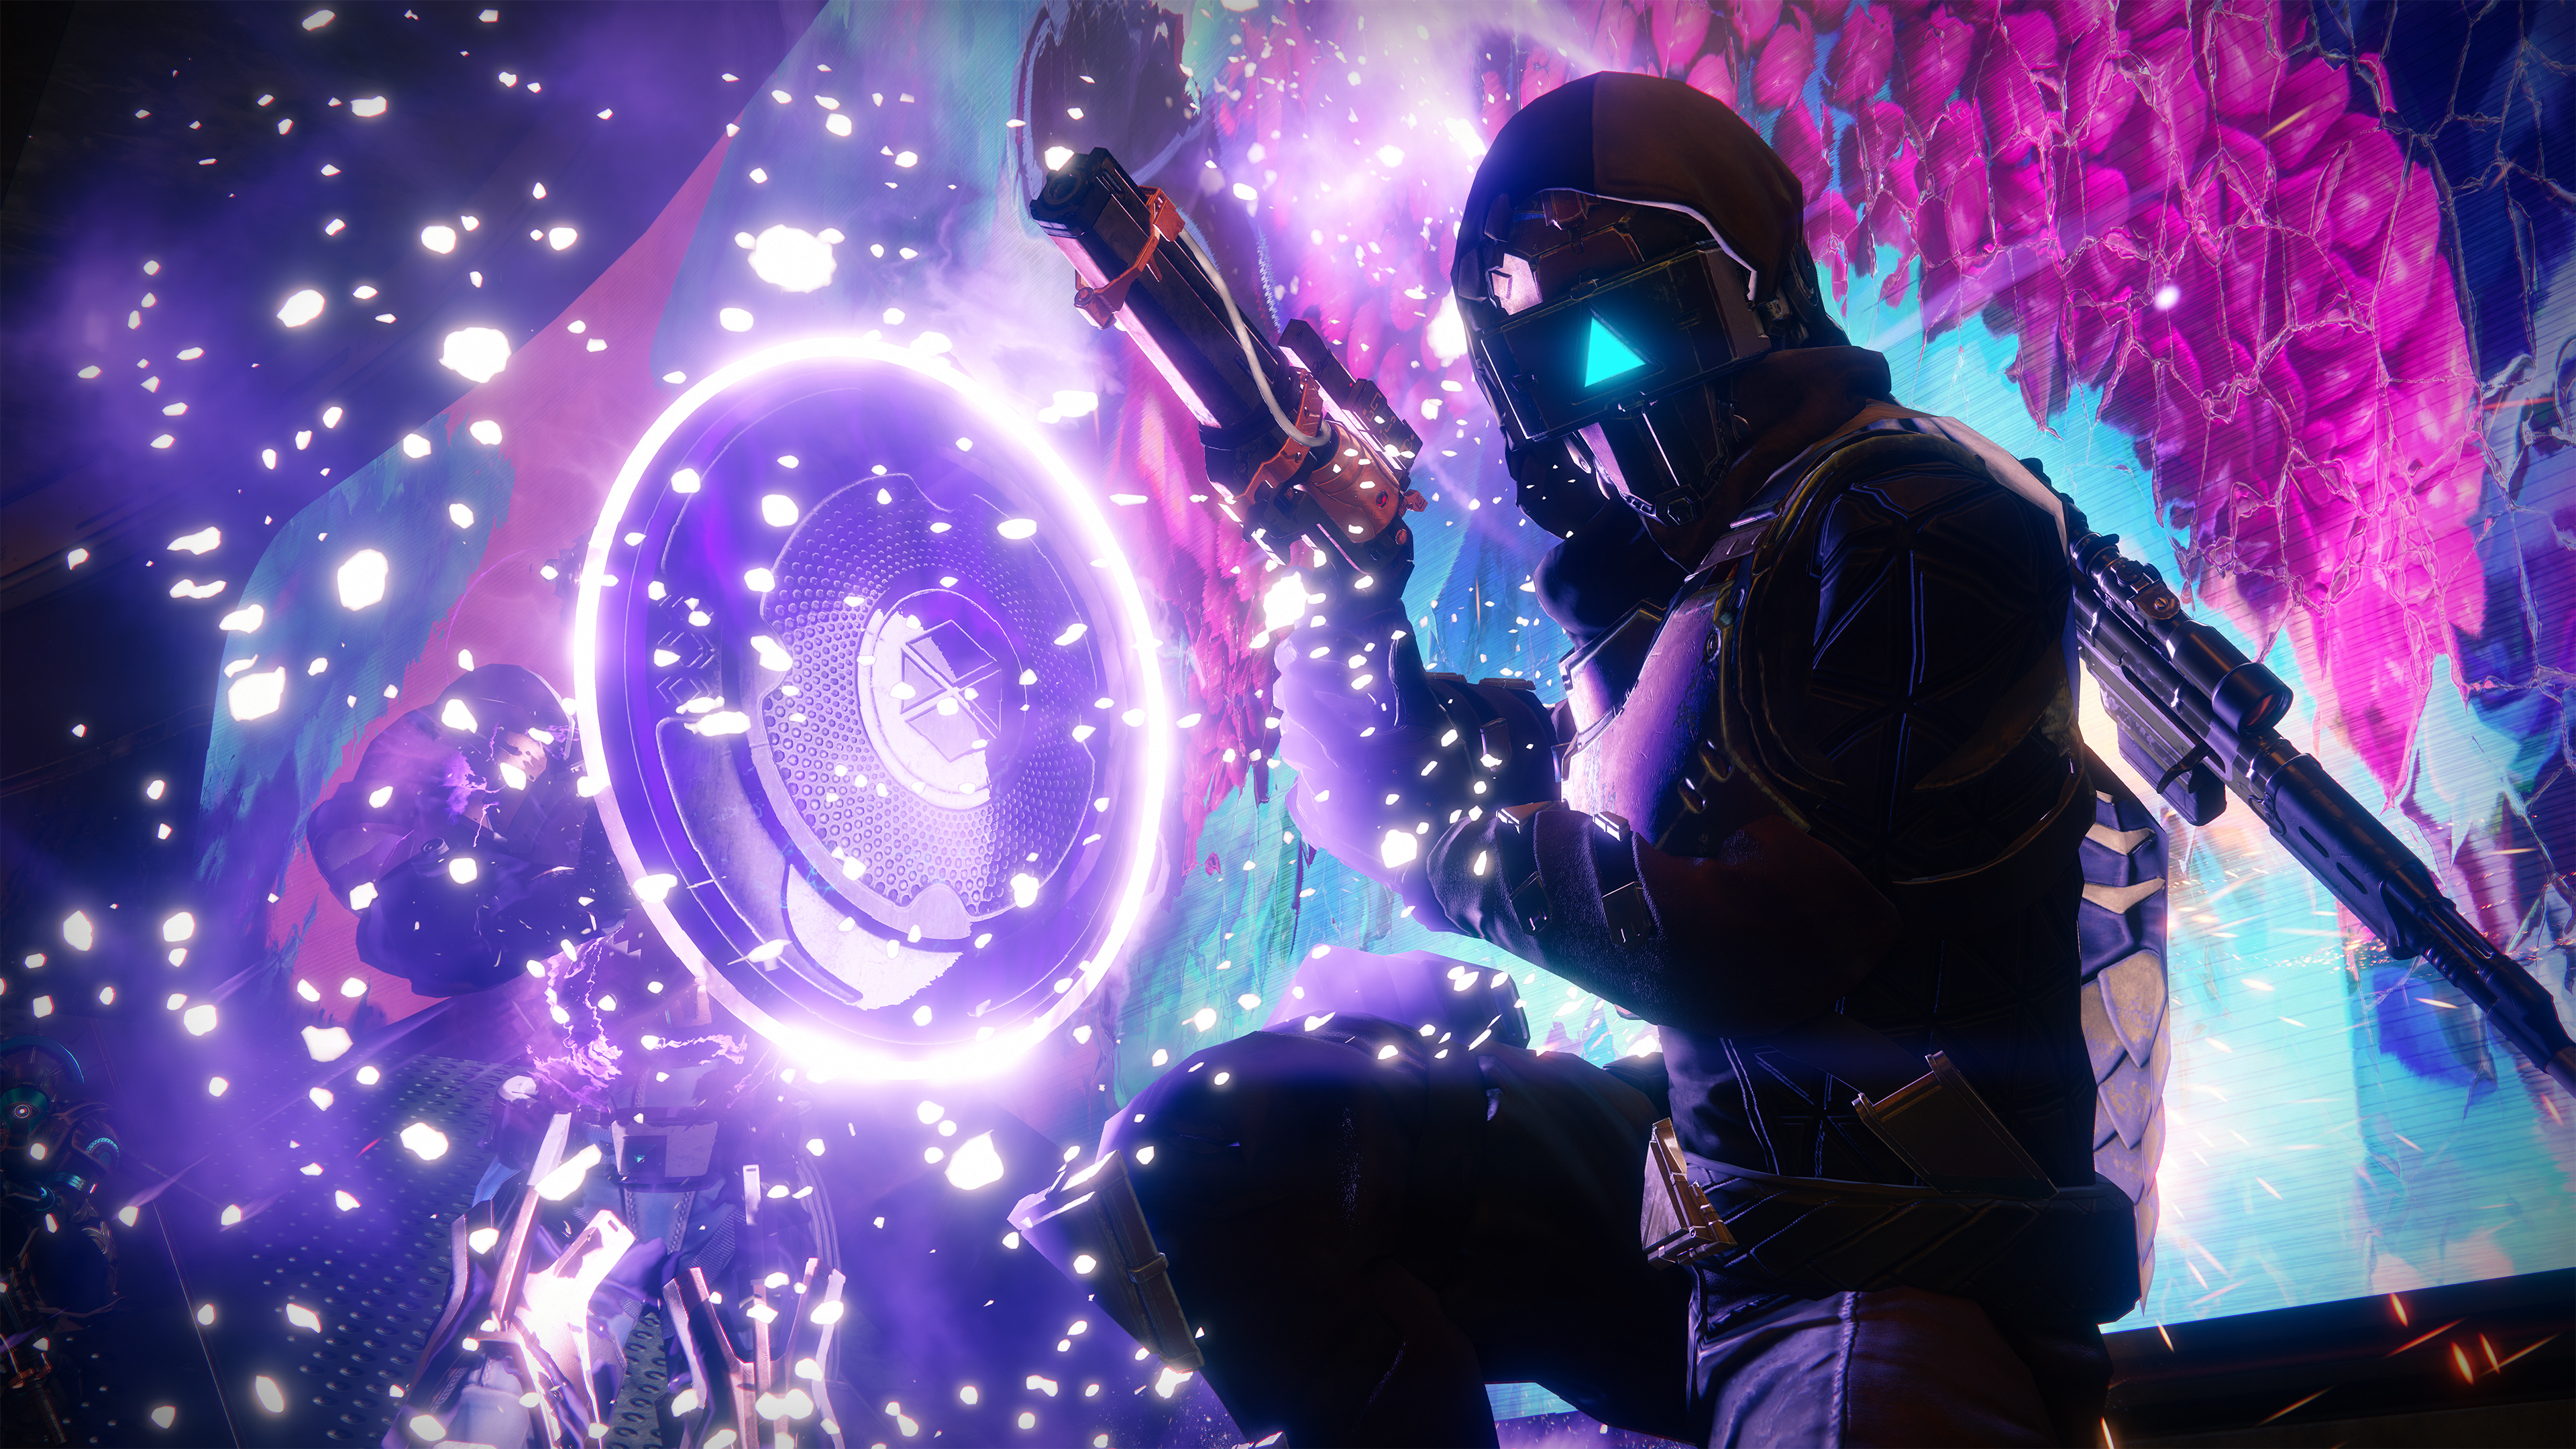 Bungie details extensive plans for player-oriented Destiny 2 updates